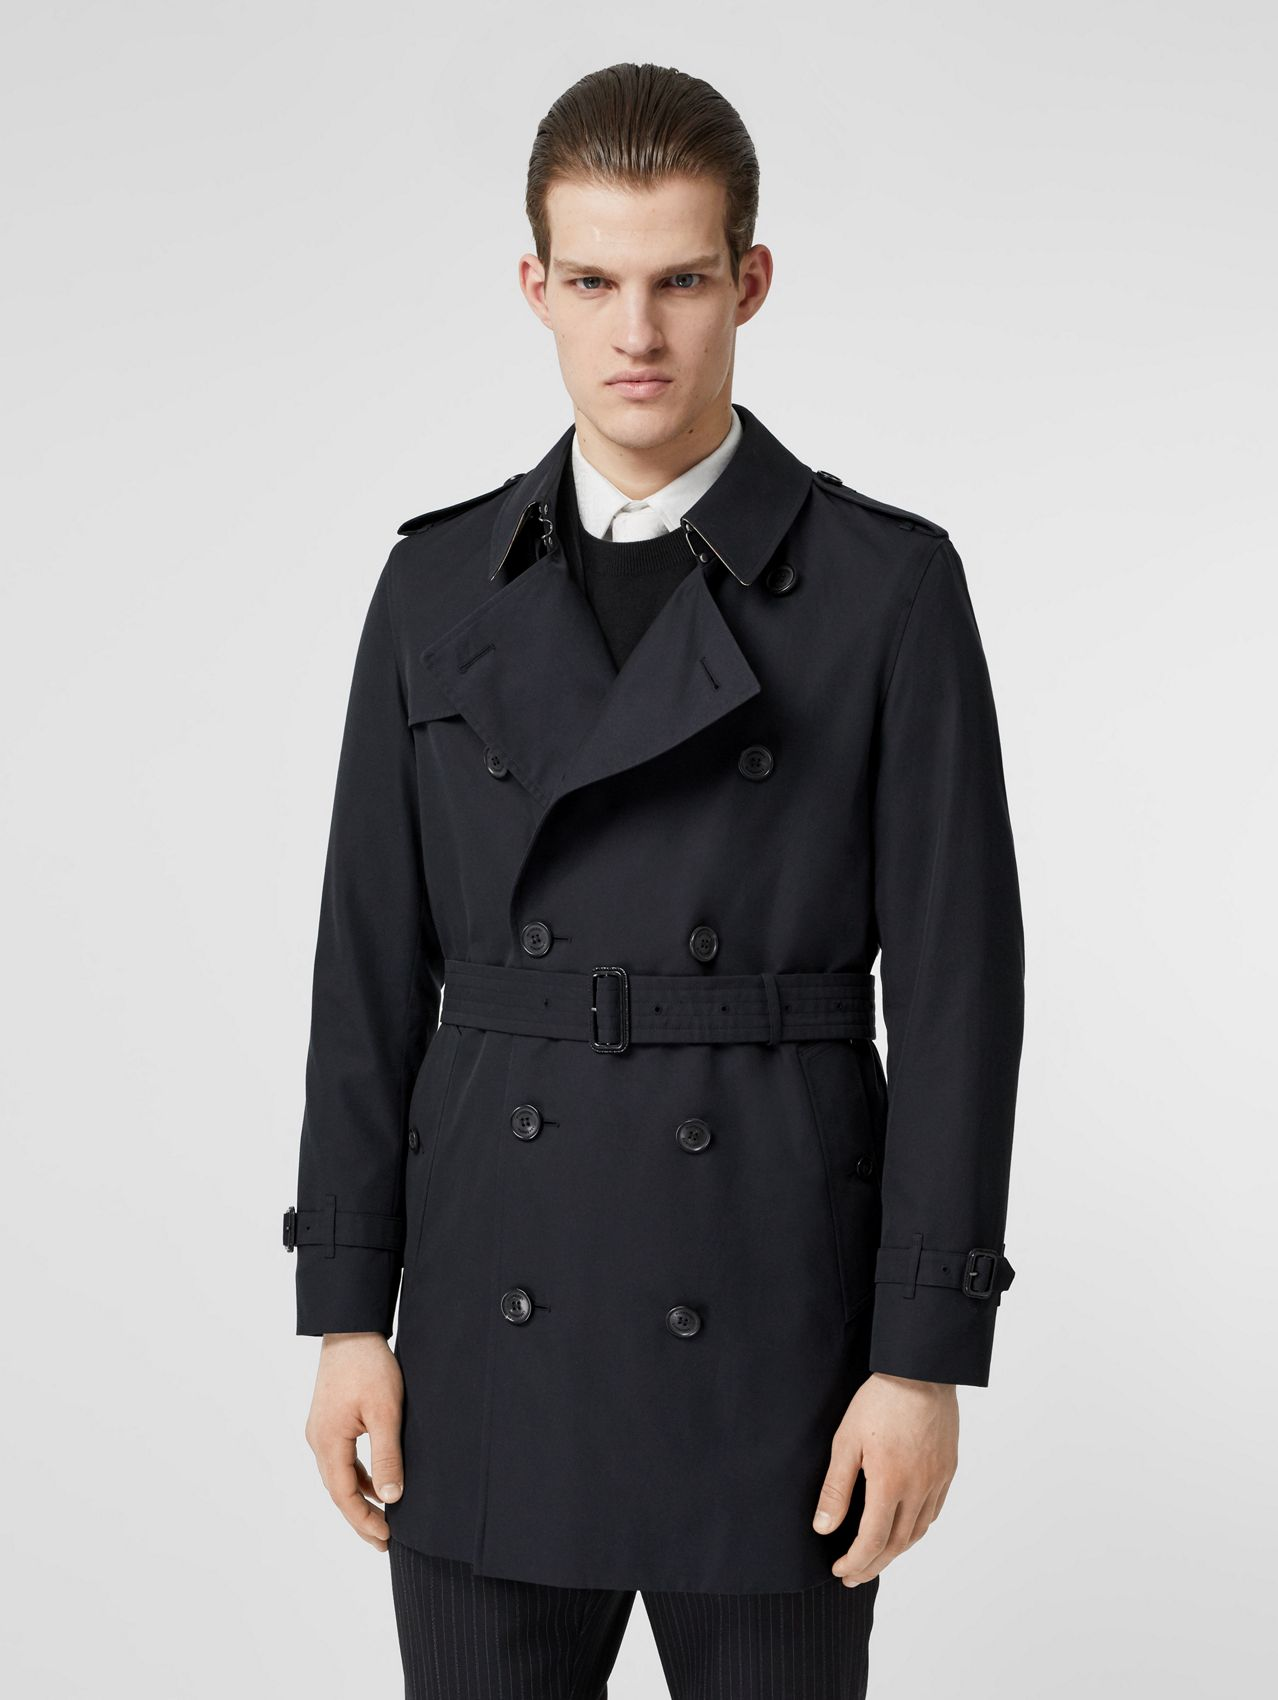 The Short Wimbledon Trench Coat in Midnight Navy